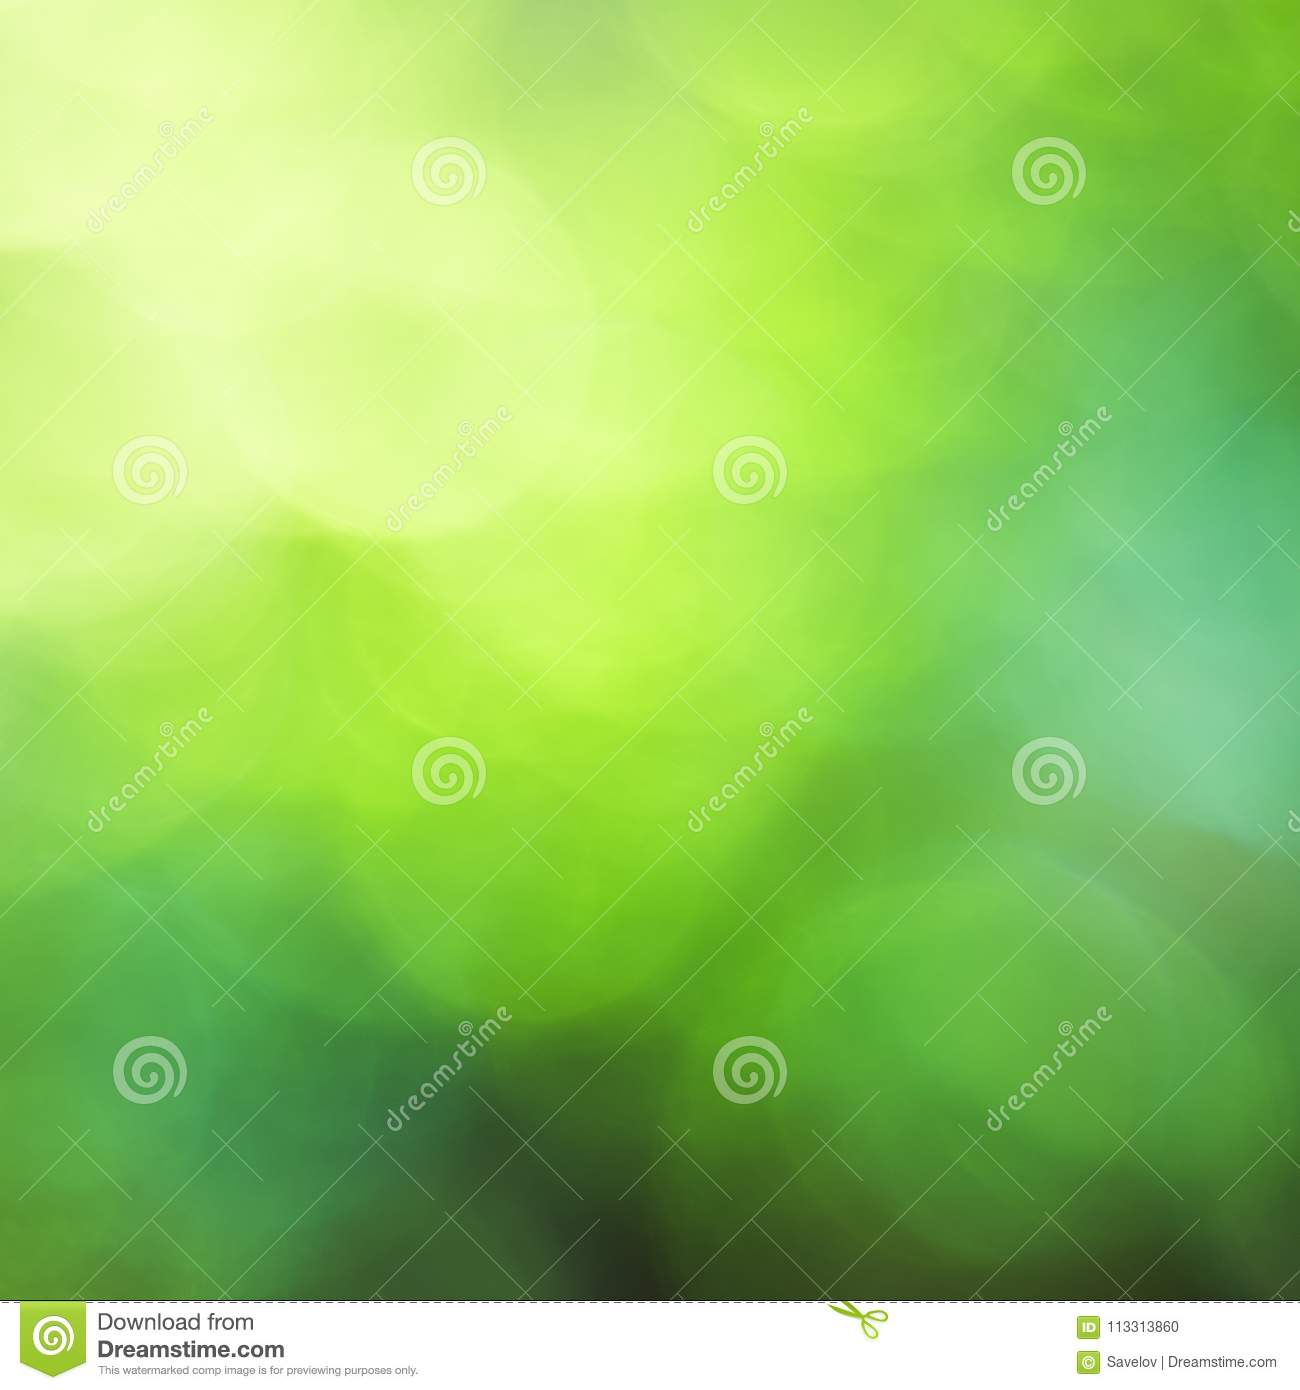 Abstract bright background of a bokeh of different shades of green, photo, square